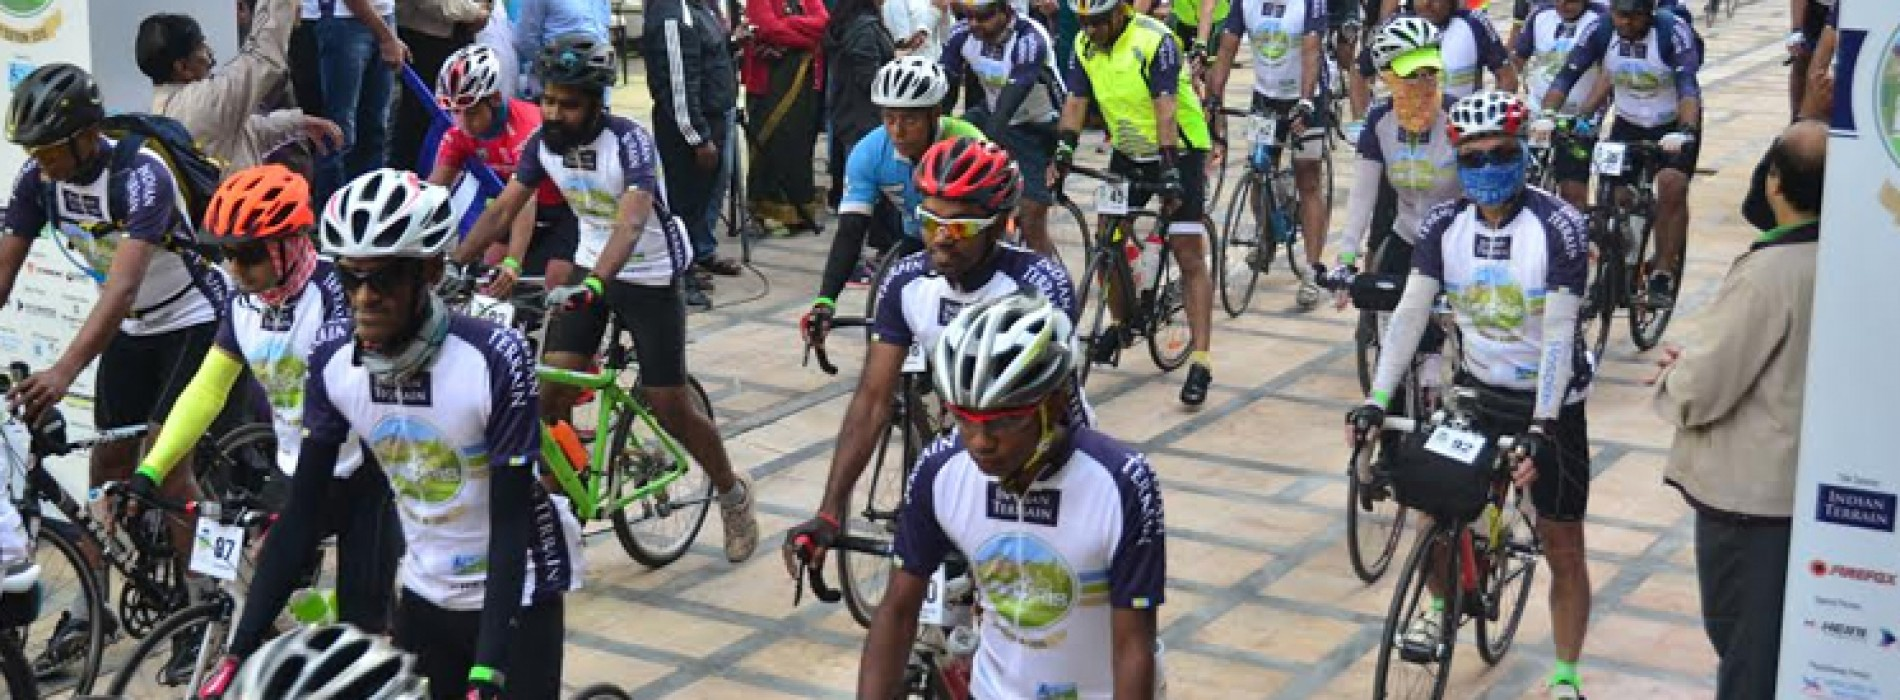 109 riders begin the Indian Terrain Tour of Nilgiris from Bengaluru